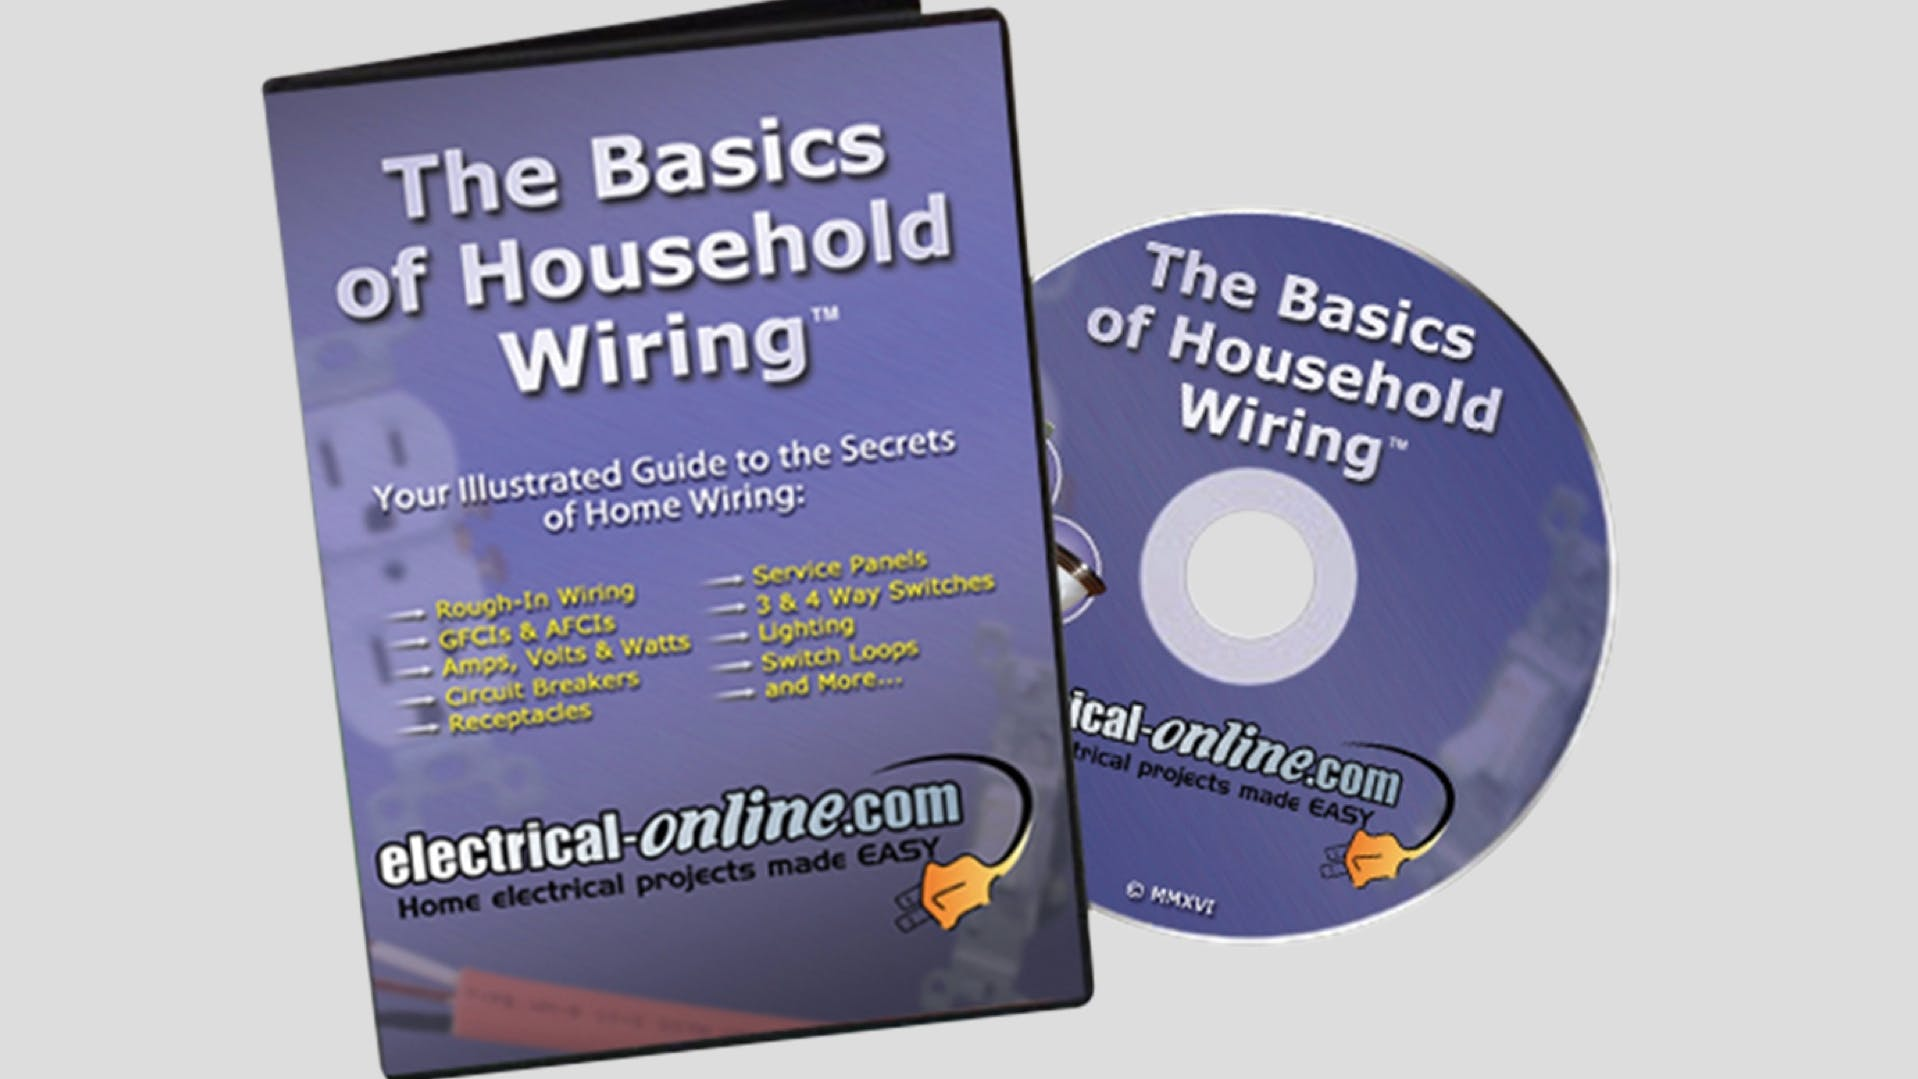 The Basics of Household Wiring